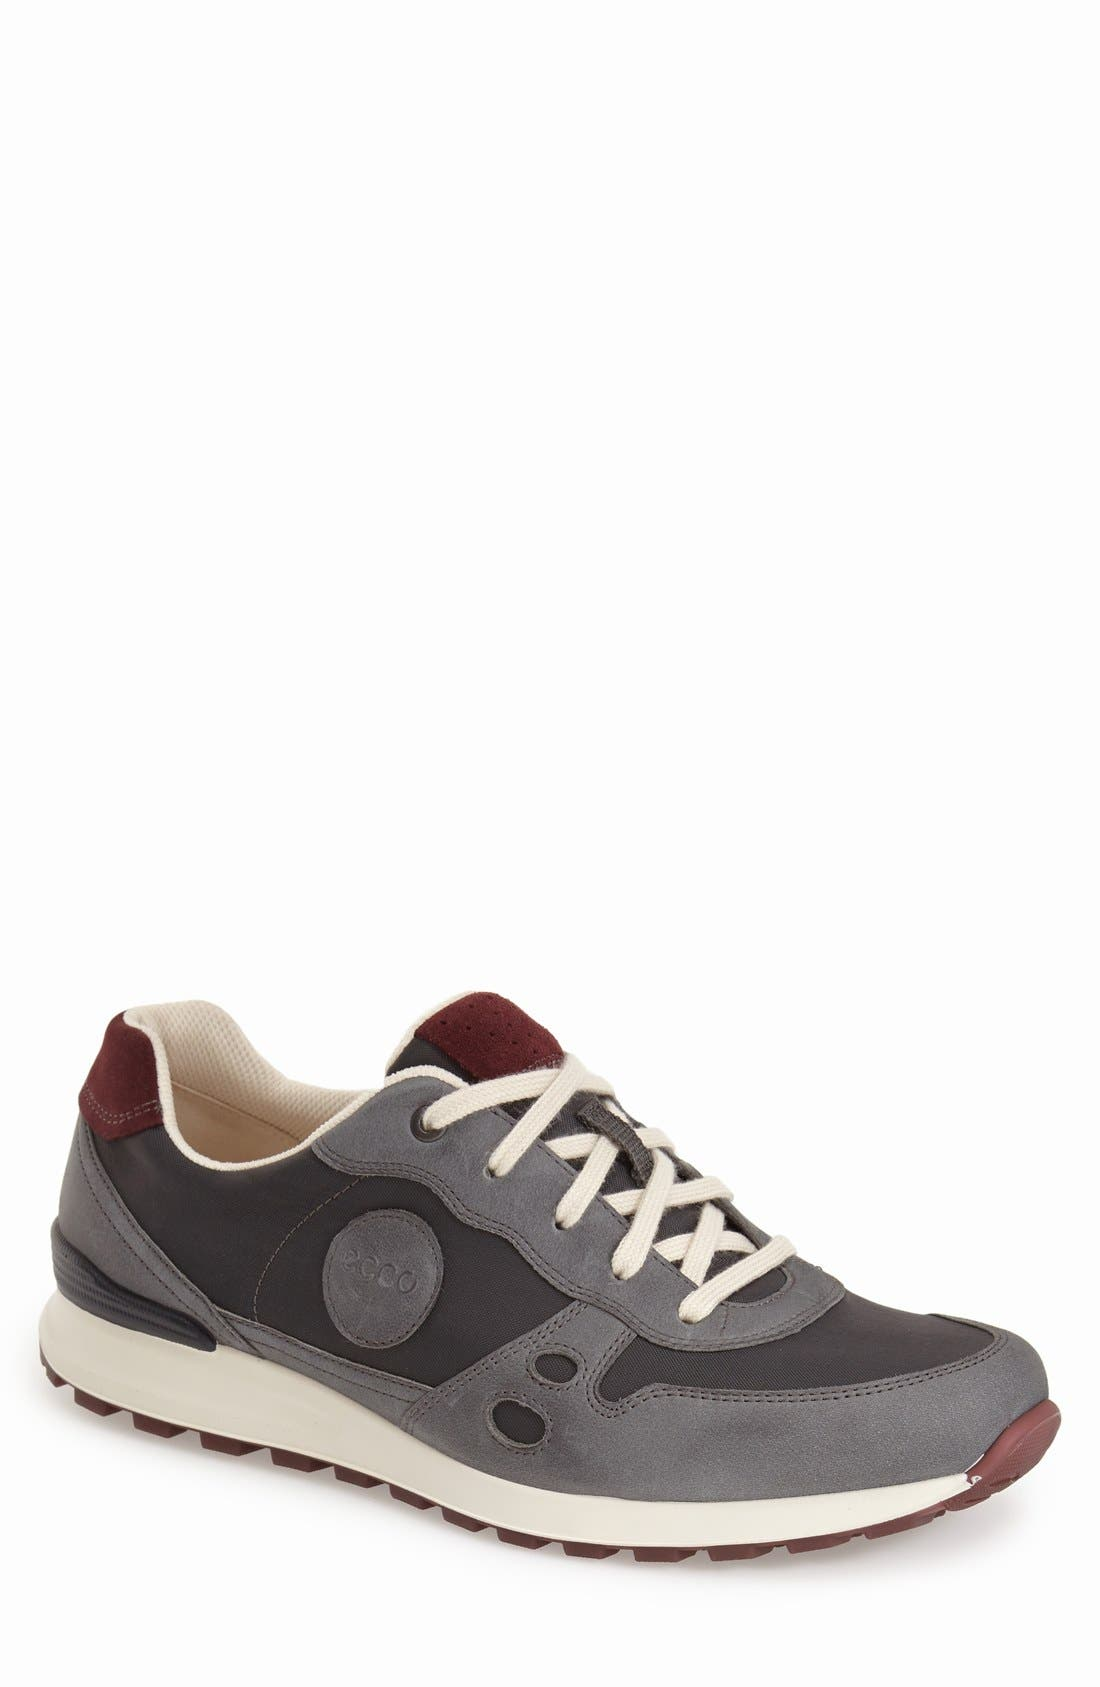 Alternate Image 1 Selected - ECCO 'CS14' Sneaker (Men)